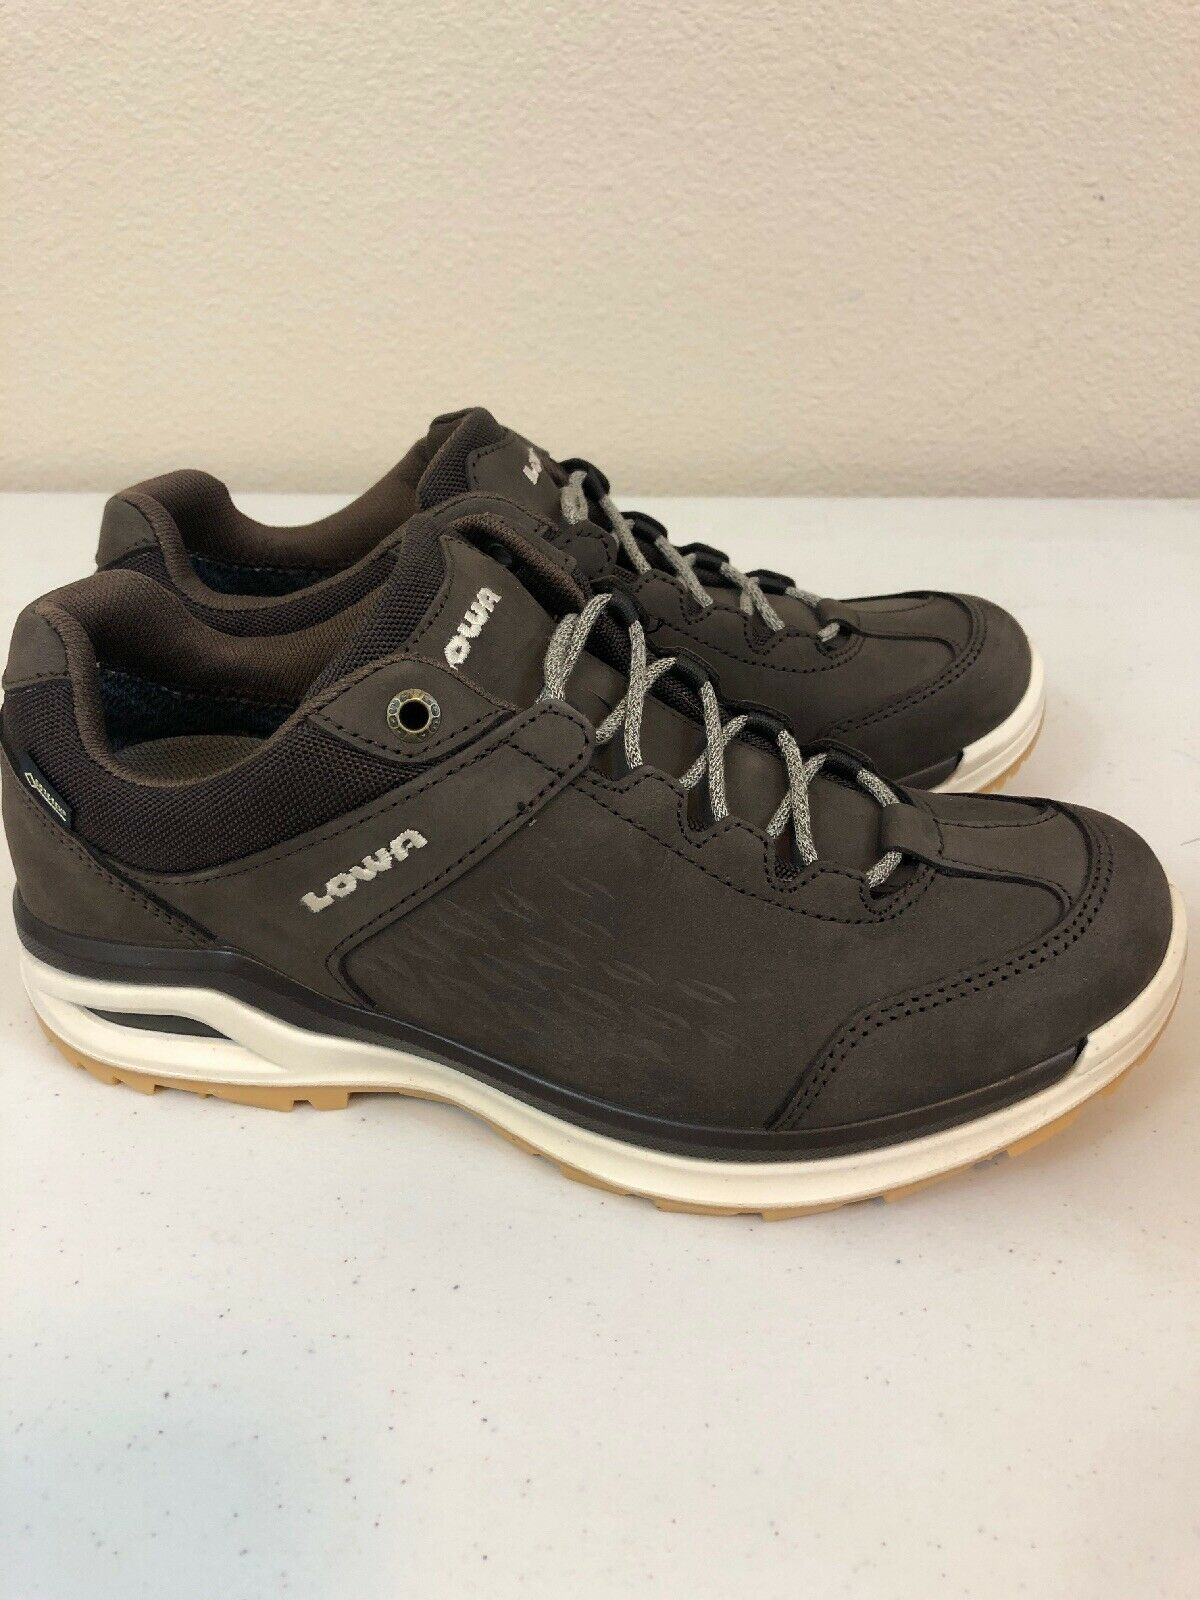 Lowa Locarno  Gore-tex Low Top Hiking shoes Womens Size 7 Brown  all in high quality and low price